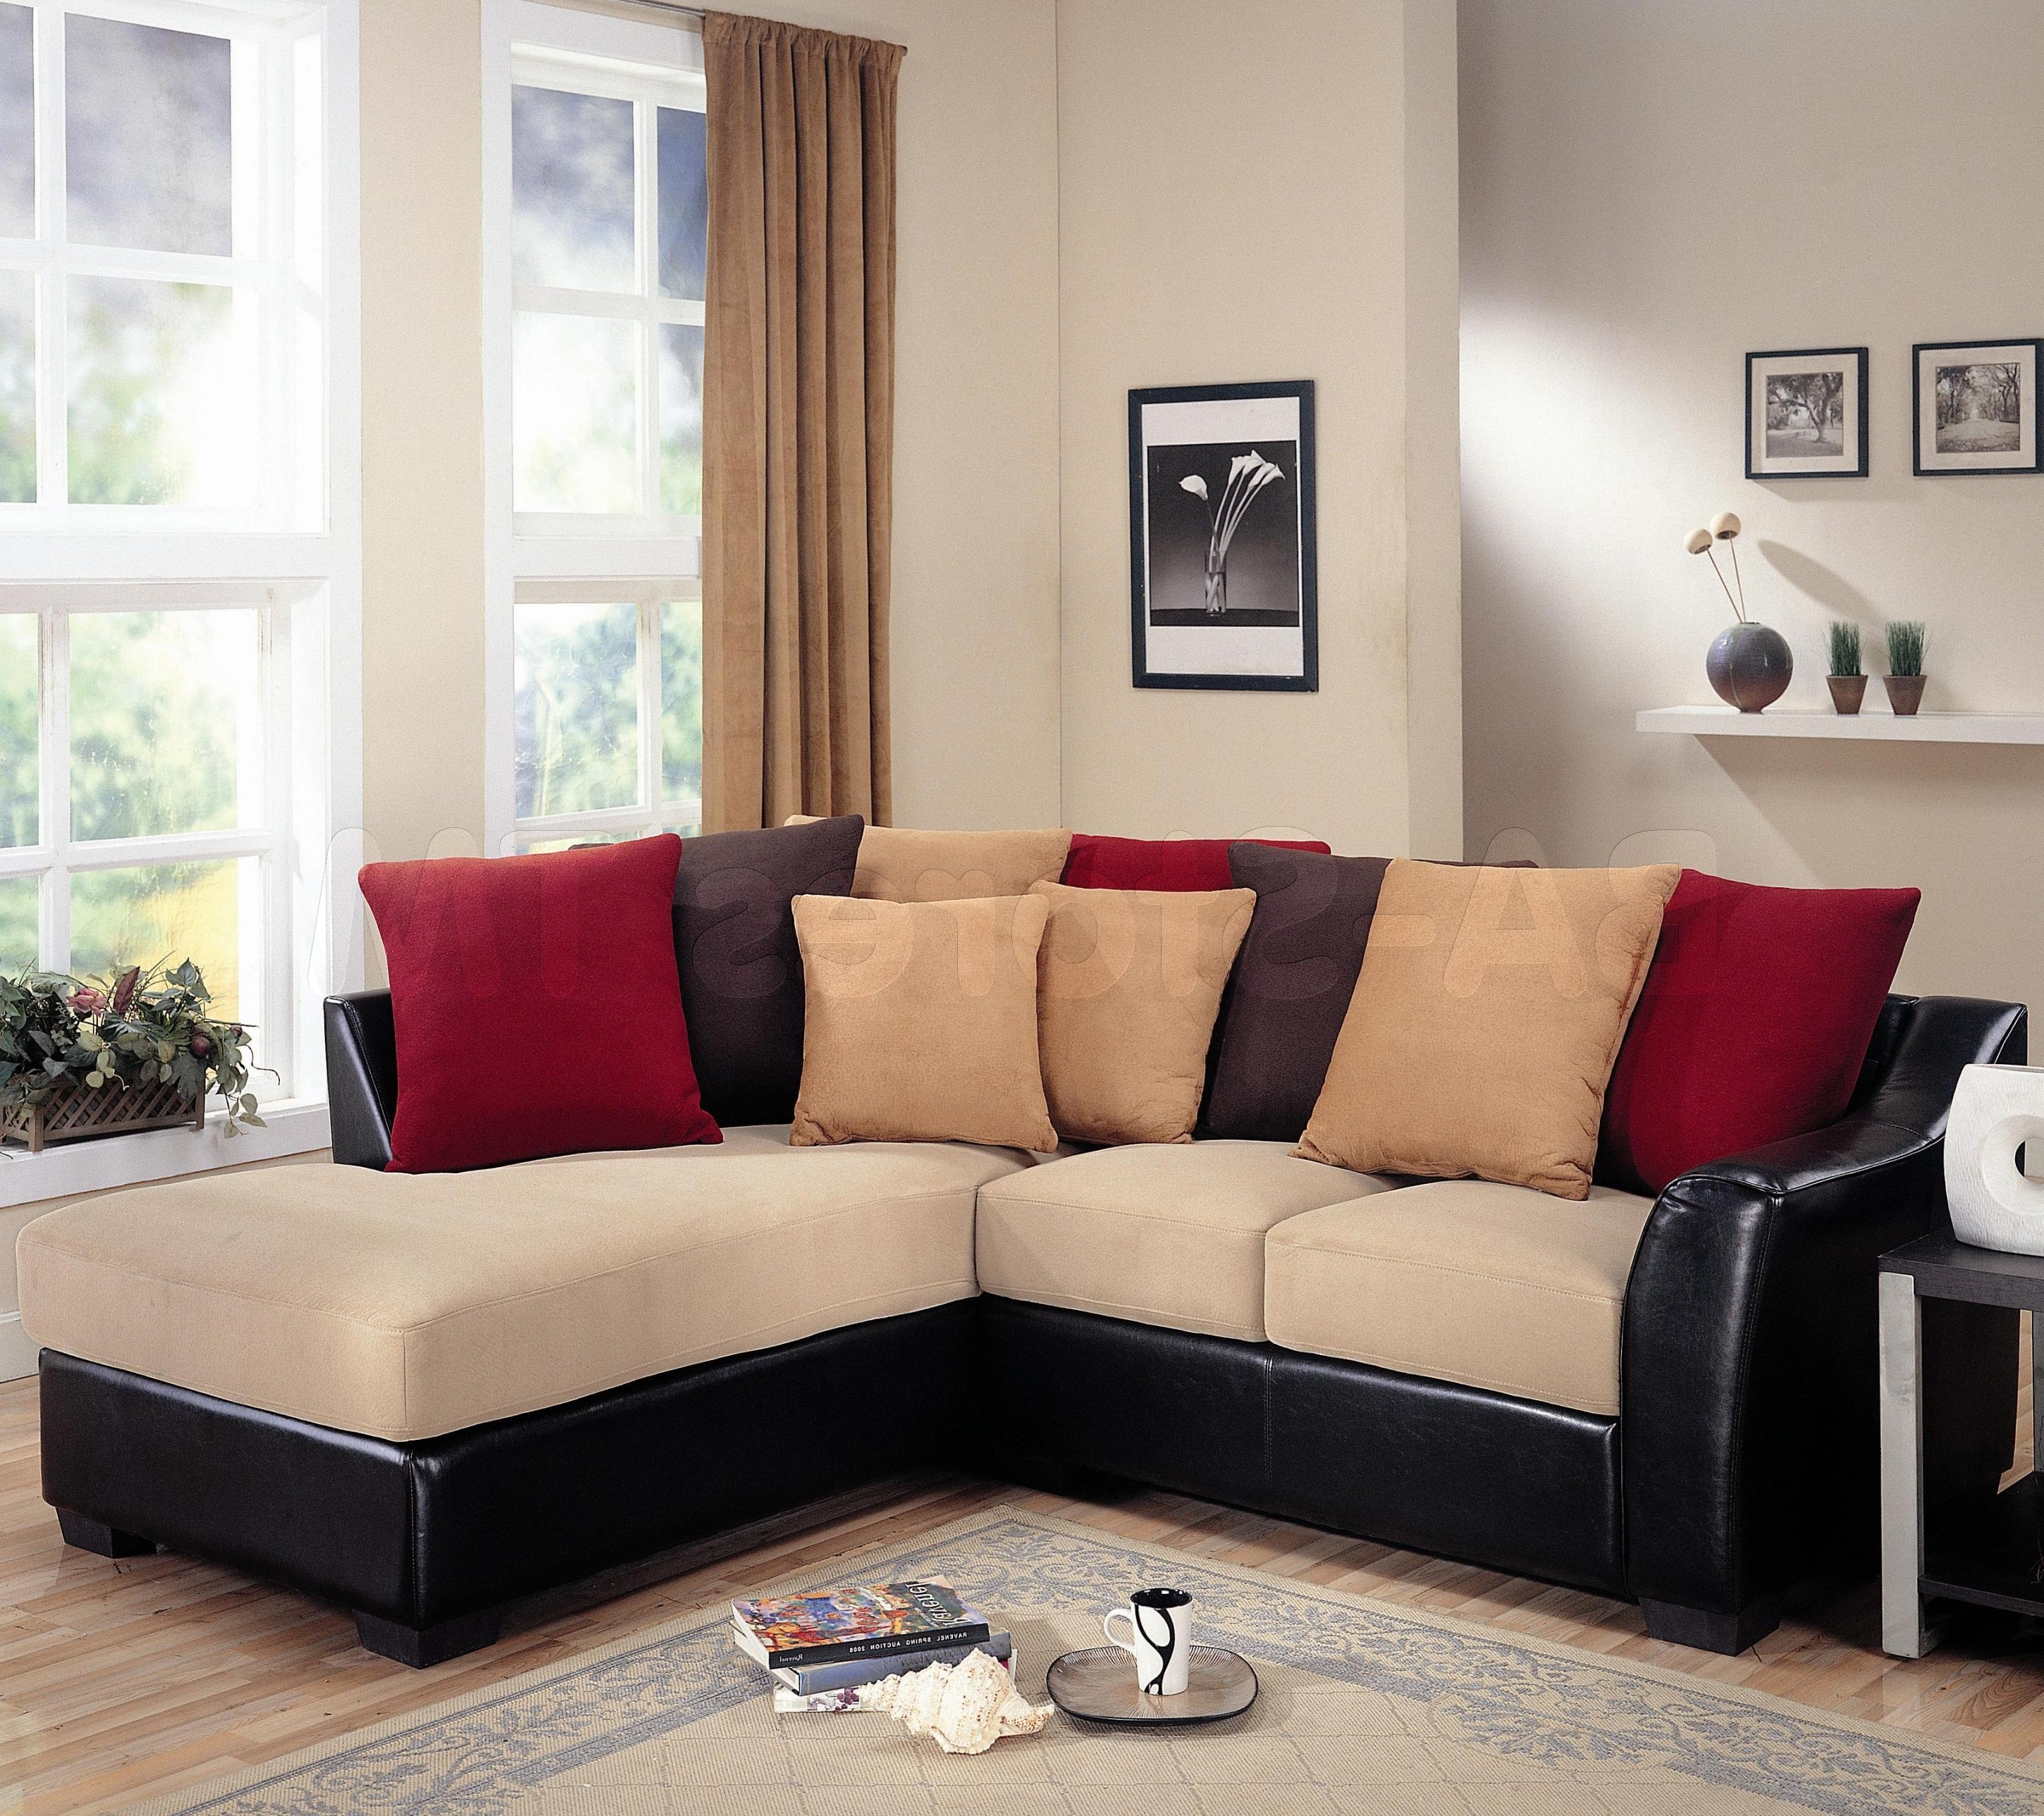 Floor Cushion Sofas For Widely Used Living Room: Cheap Living Room Sets Very Cheap Living Room (View 7 of 20)